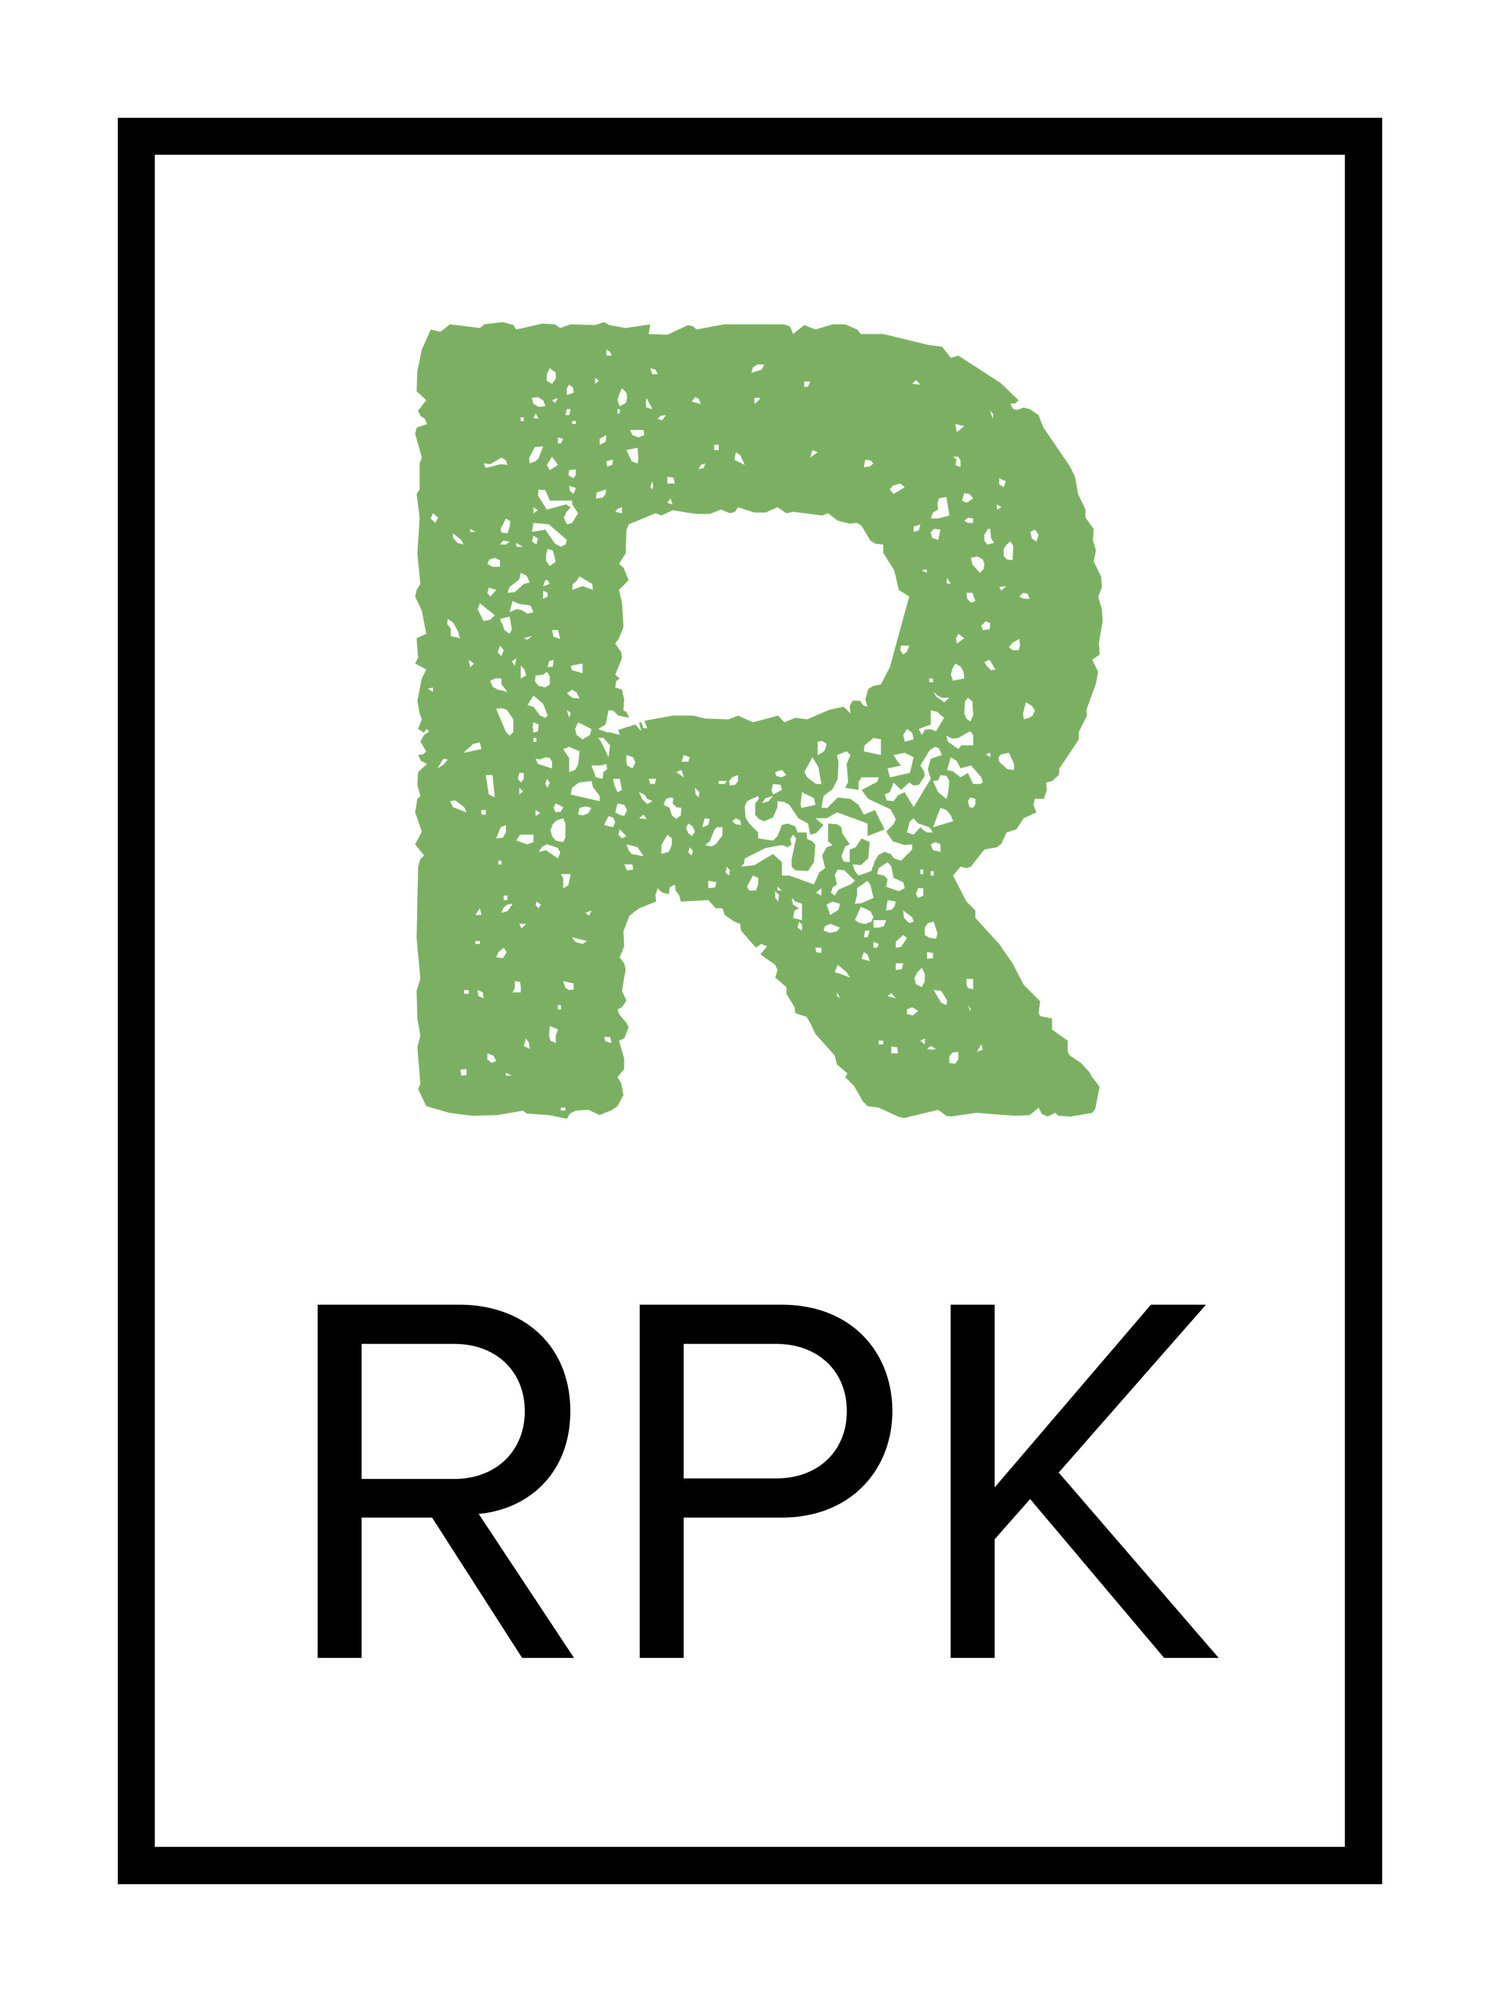 RPK Design Group